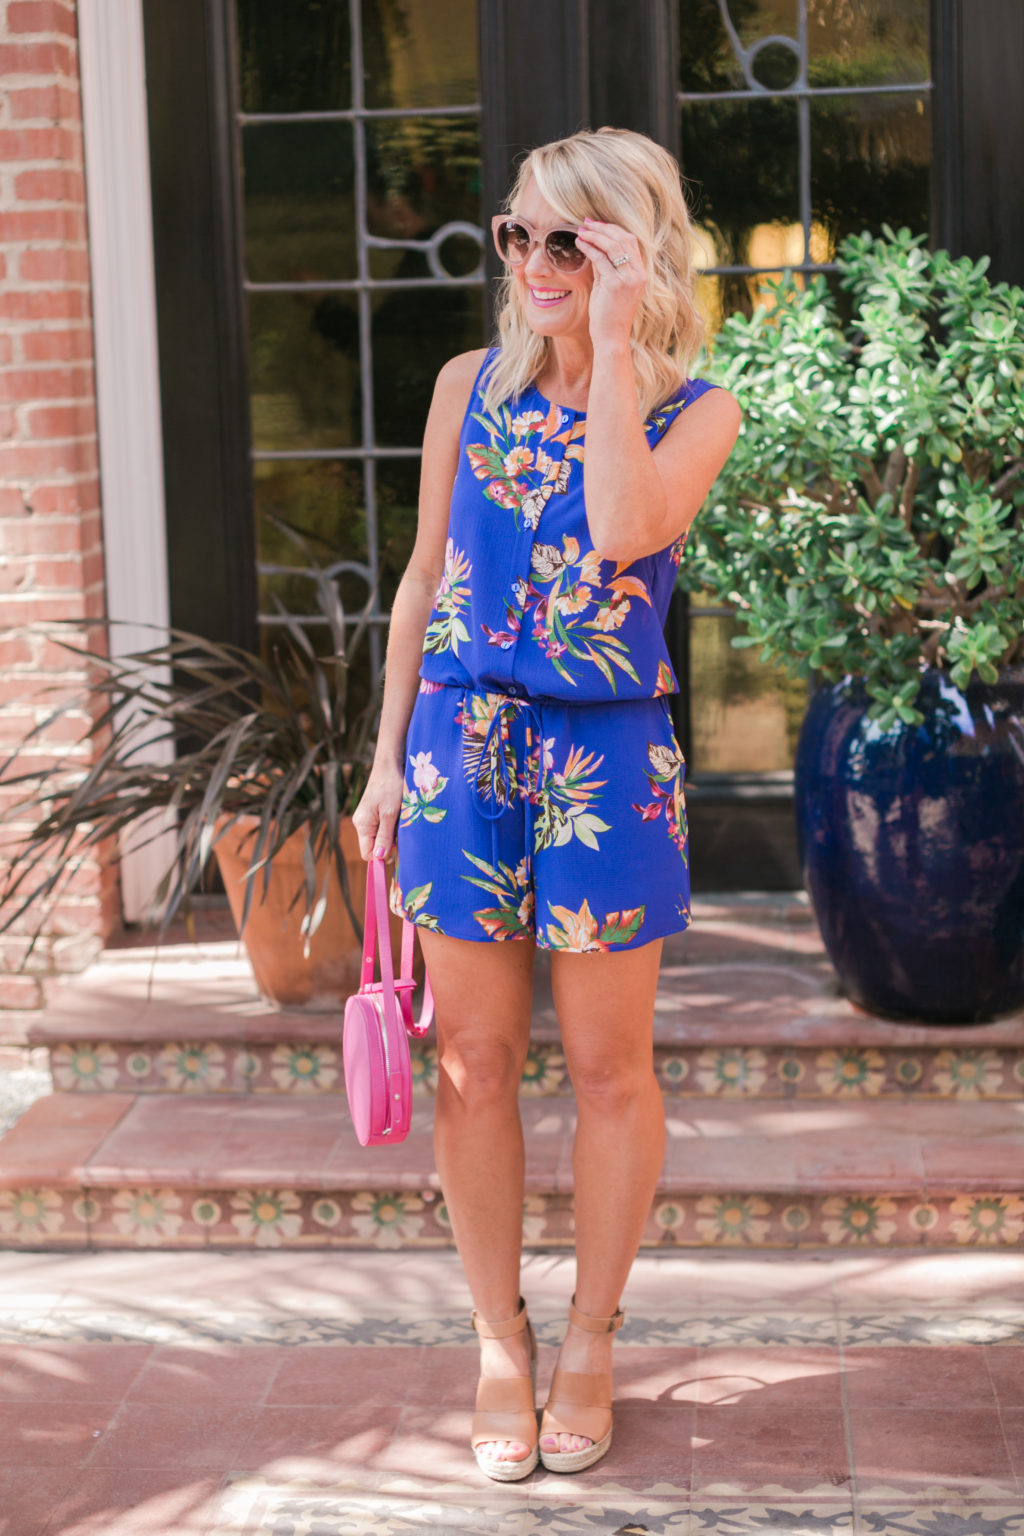 gibson hi sugarplum nordstrom collection captiva tie waist romper in bright floral